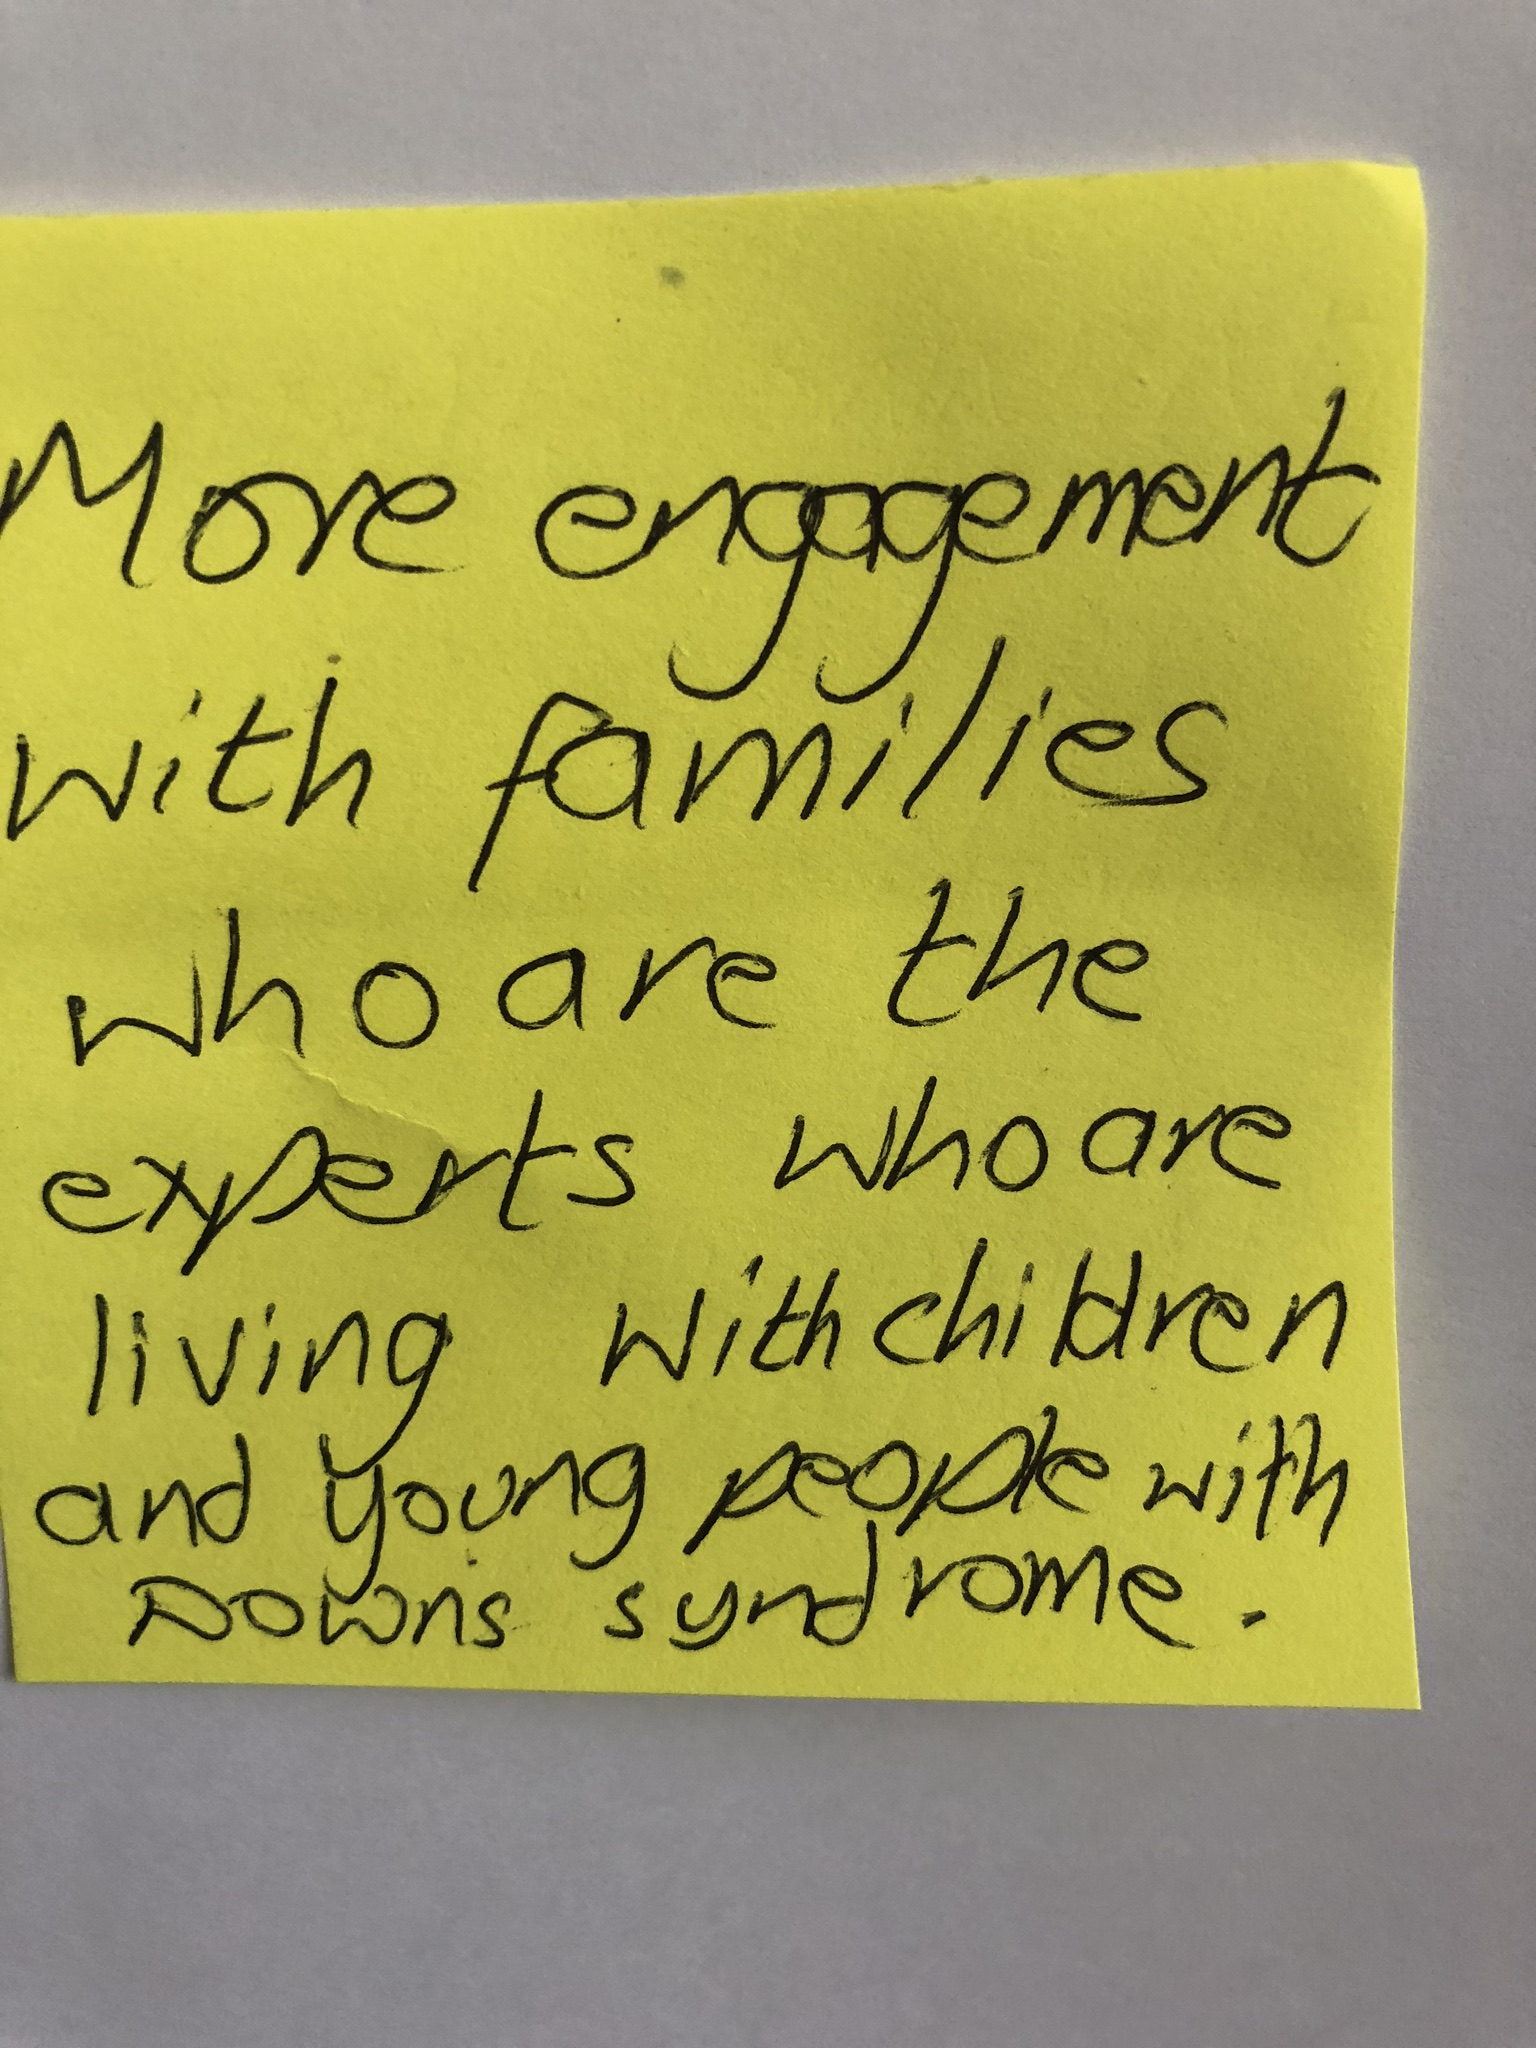 DS postit – lived experience families IMG_2611